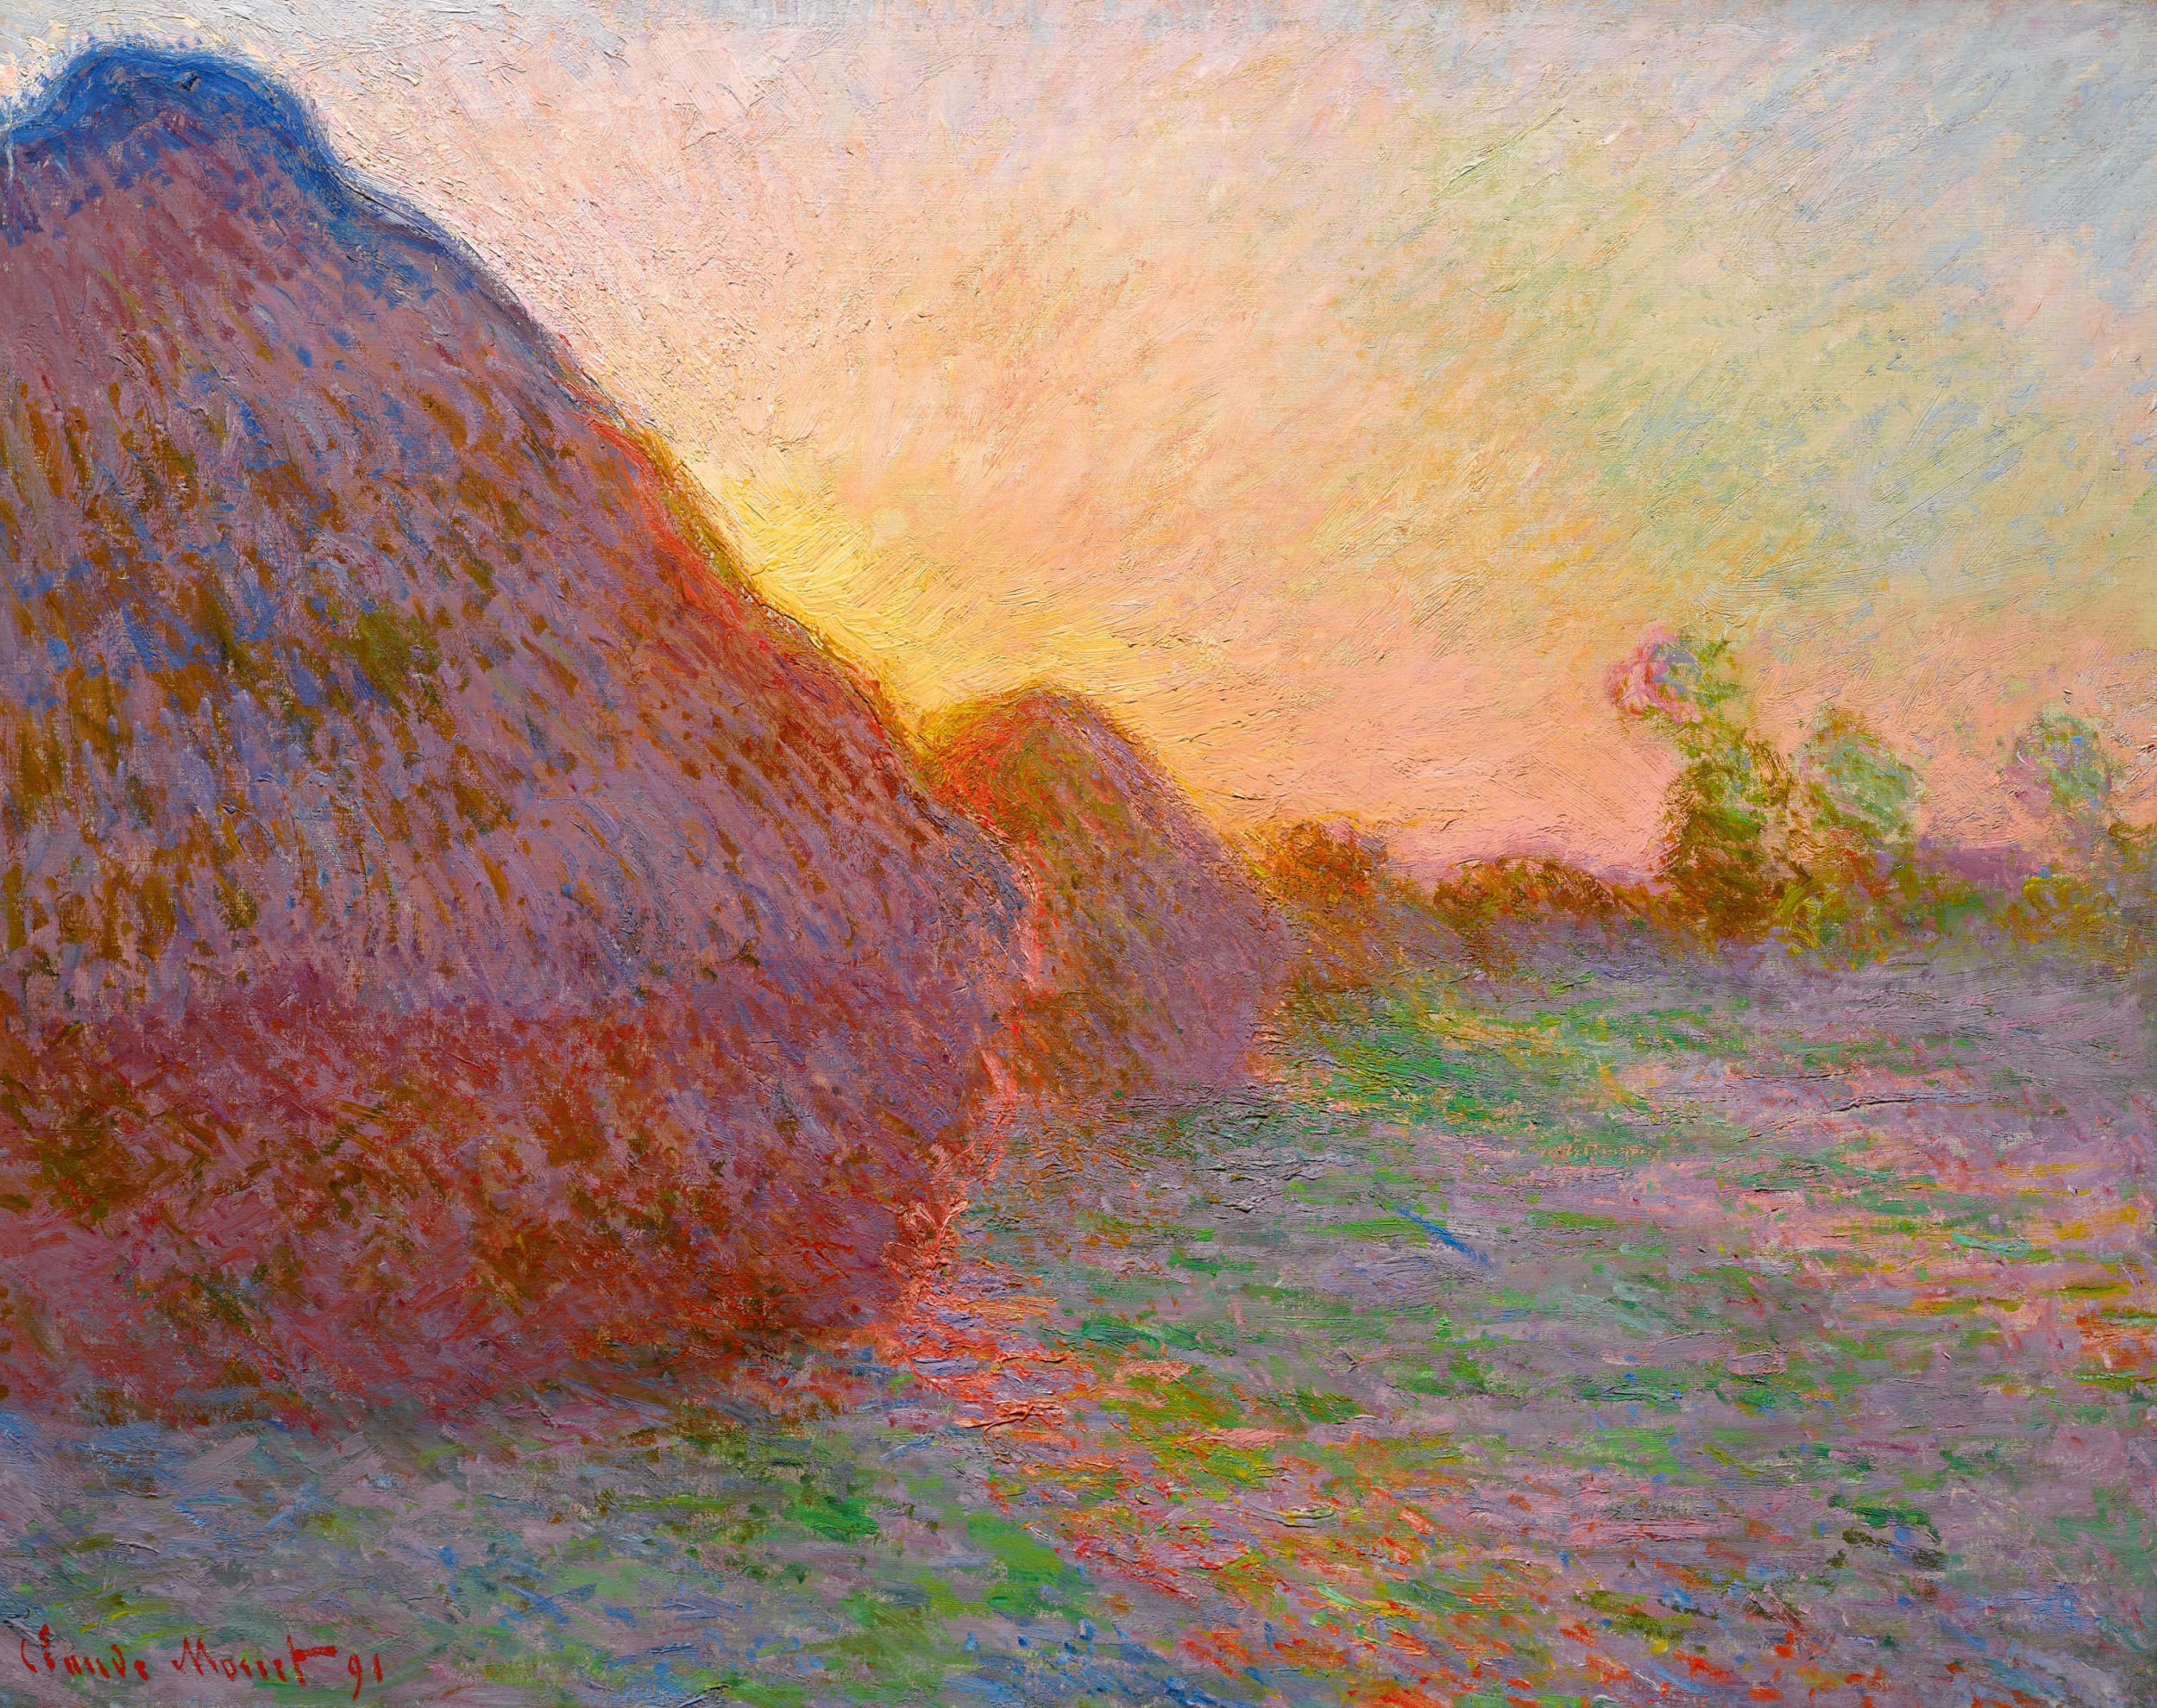 Claude Monet's Meules materspiece which sold at Sotheby's